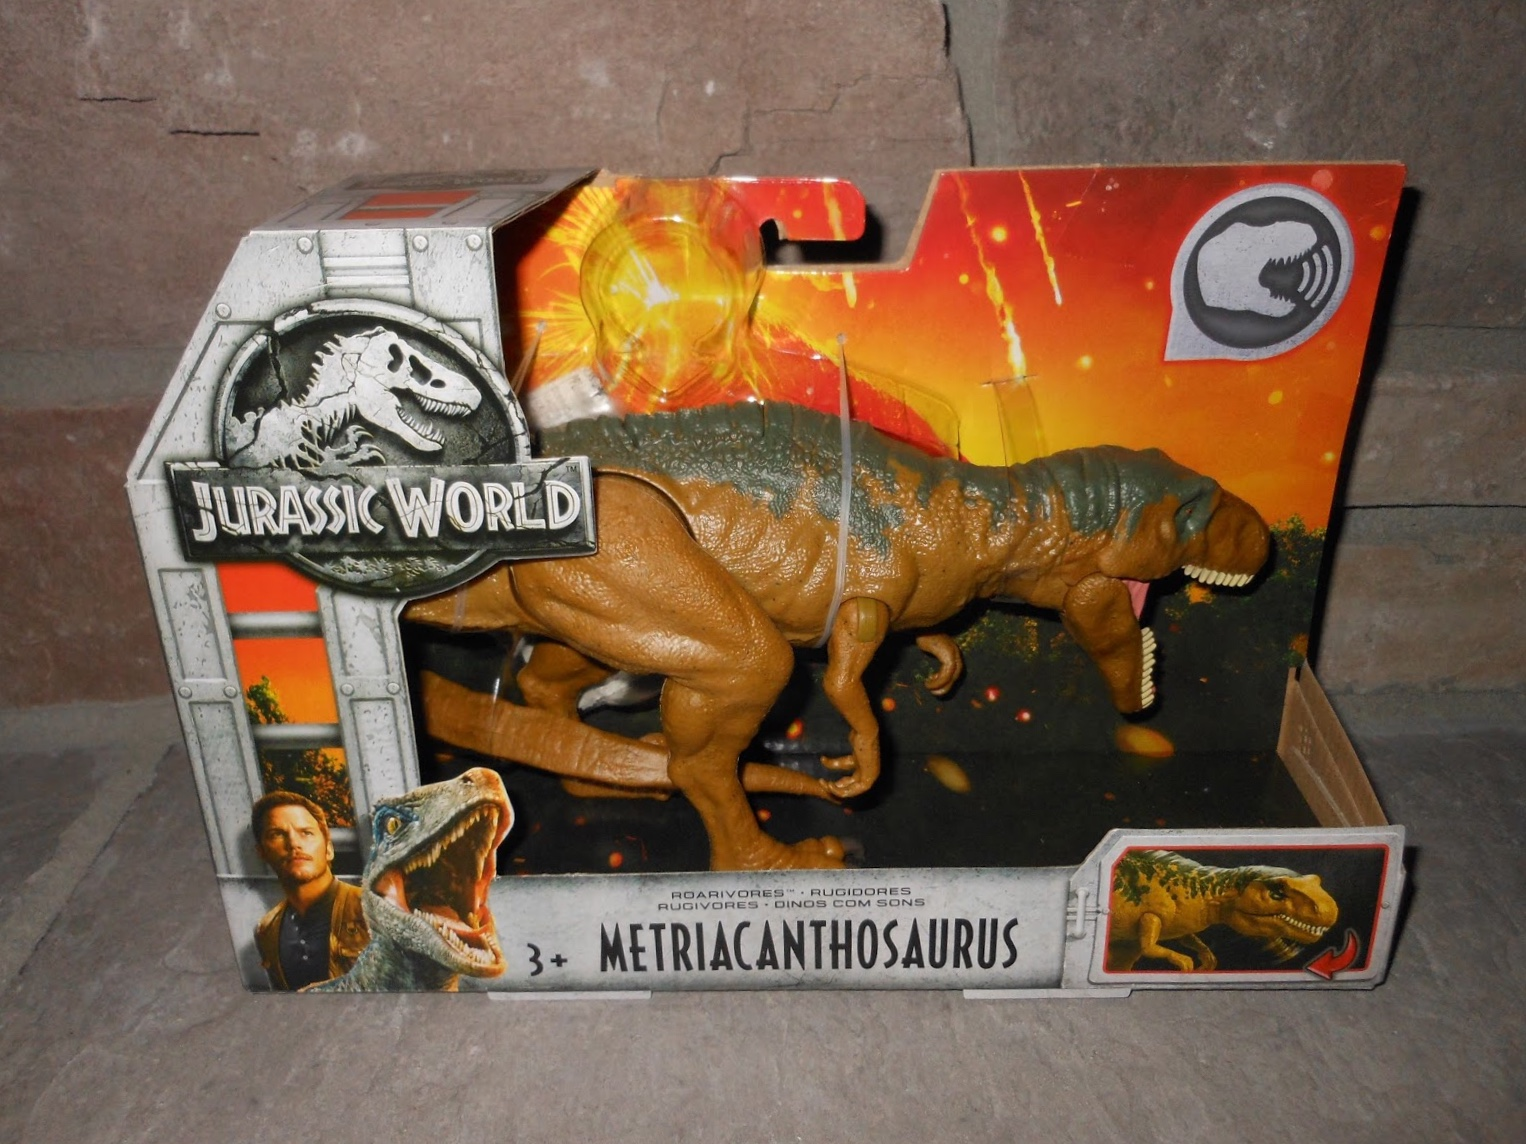 LIMITED Jurassic World Dinosaur Toy Fallen Kingdom Toys Velociraptor Orange NEW